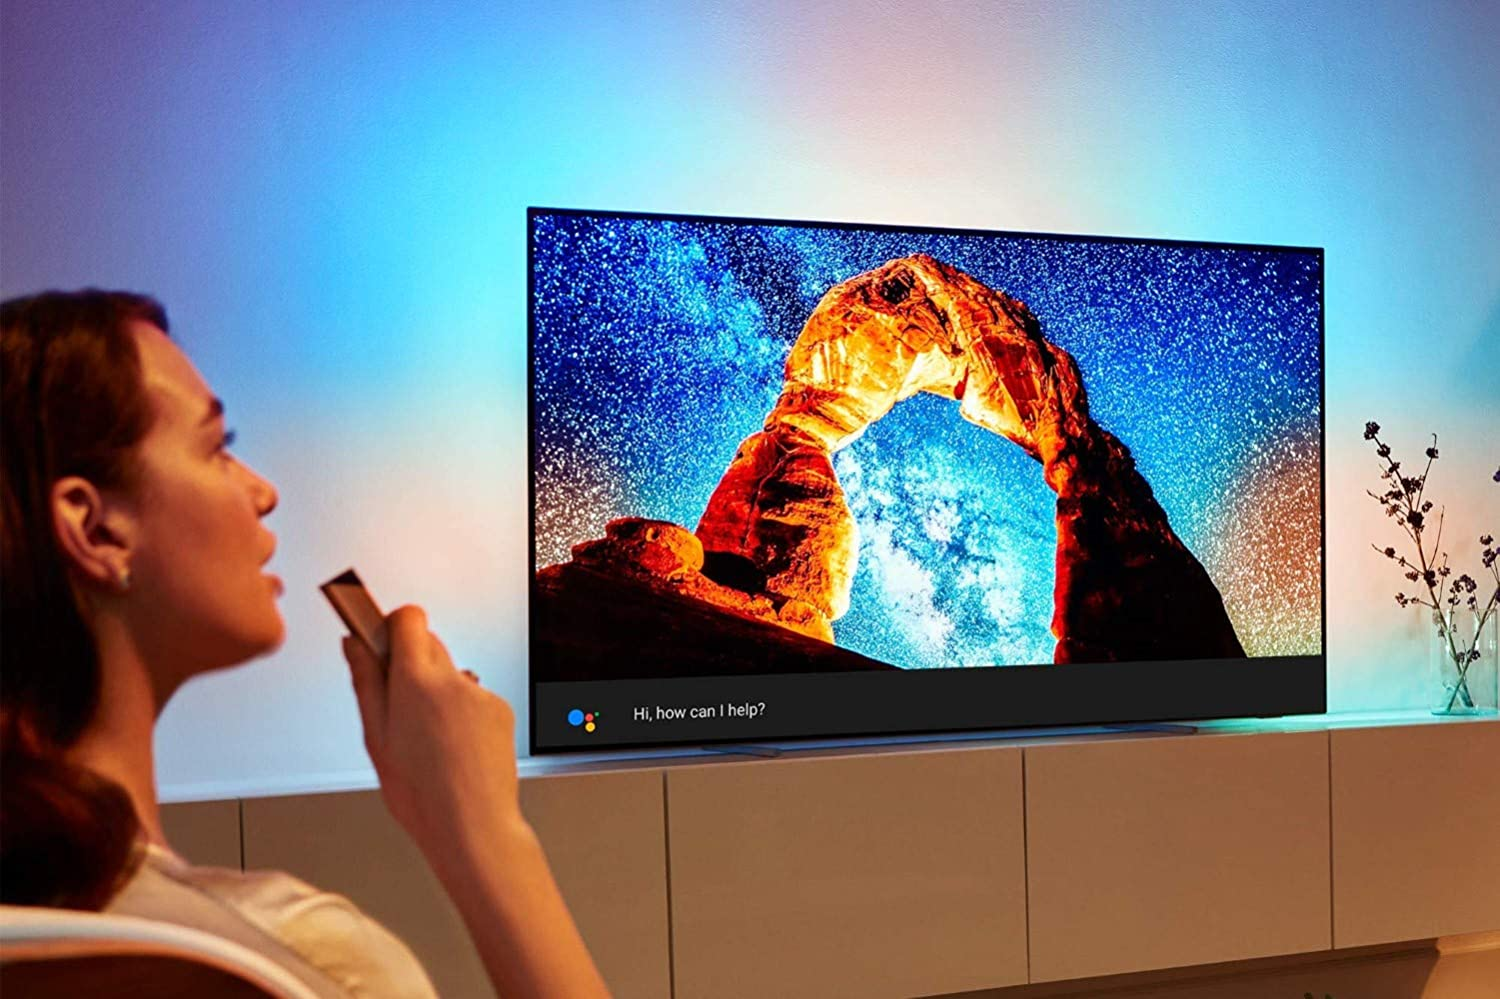 TV 65 Pollici OLED Philips 803 con luci ambientali Ambilight